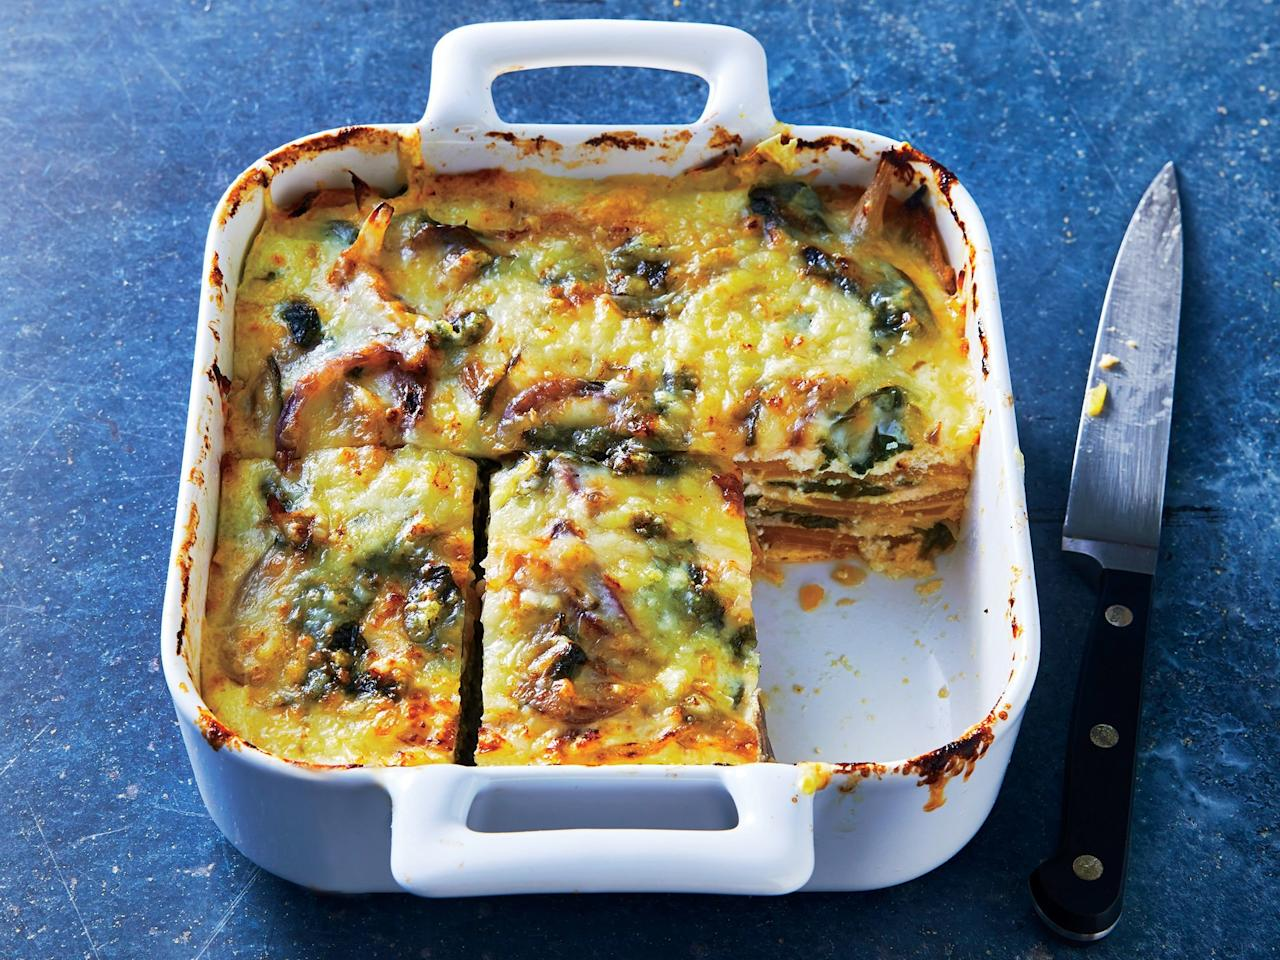 """<p>Silky roasted butternut squash stands in for noodles in this more nutritious take on the starchy pasta casserole.</p> <p><a href=""""https://www.myrecipes.com/recipe/butternut-squash-and-spinach-lasagna"""">Butternut Squash and Spinach Lasagna Recipe</a></p>"""